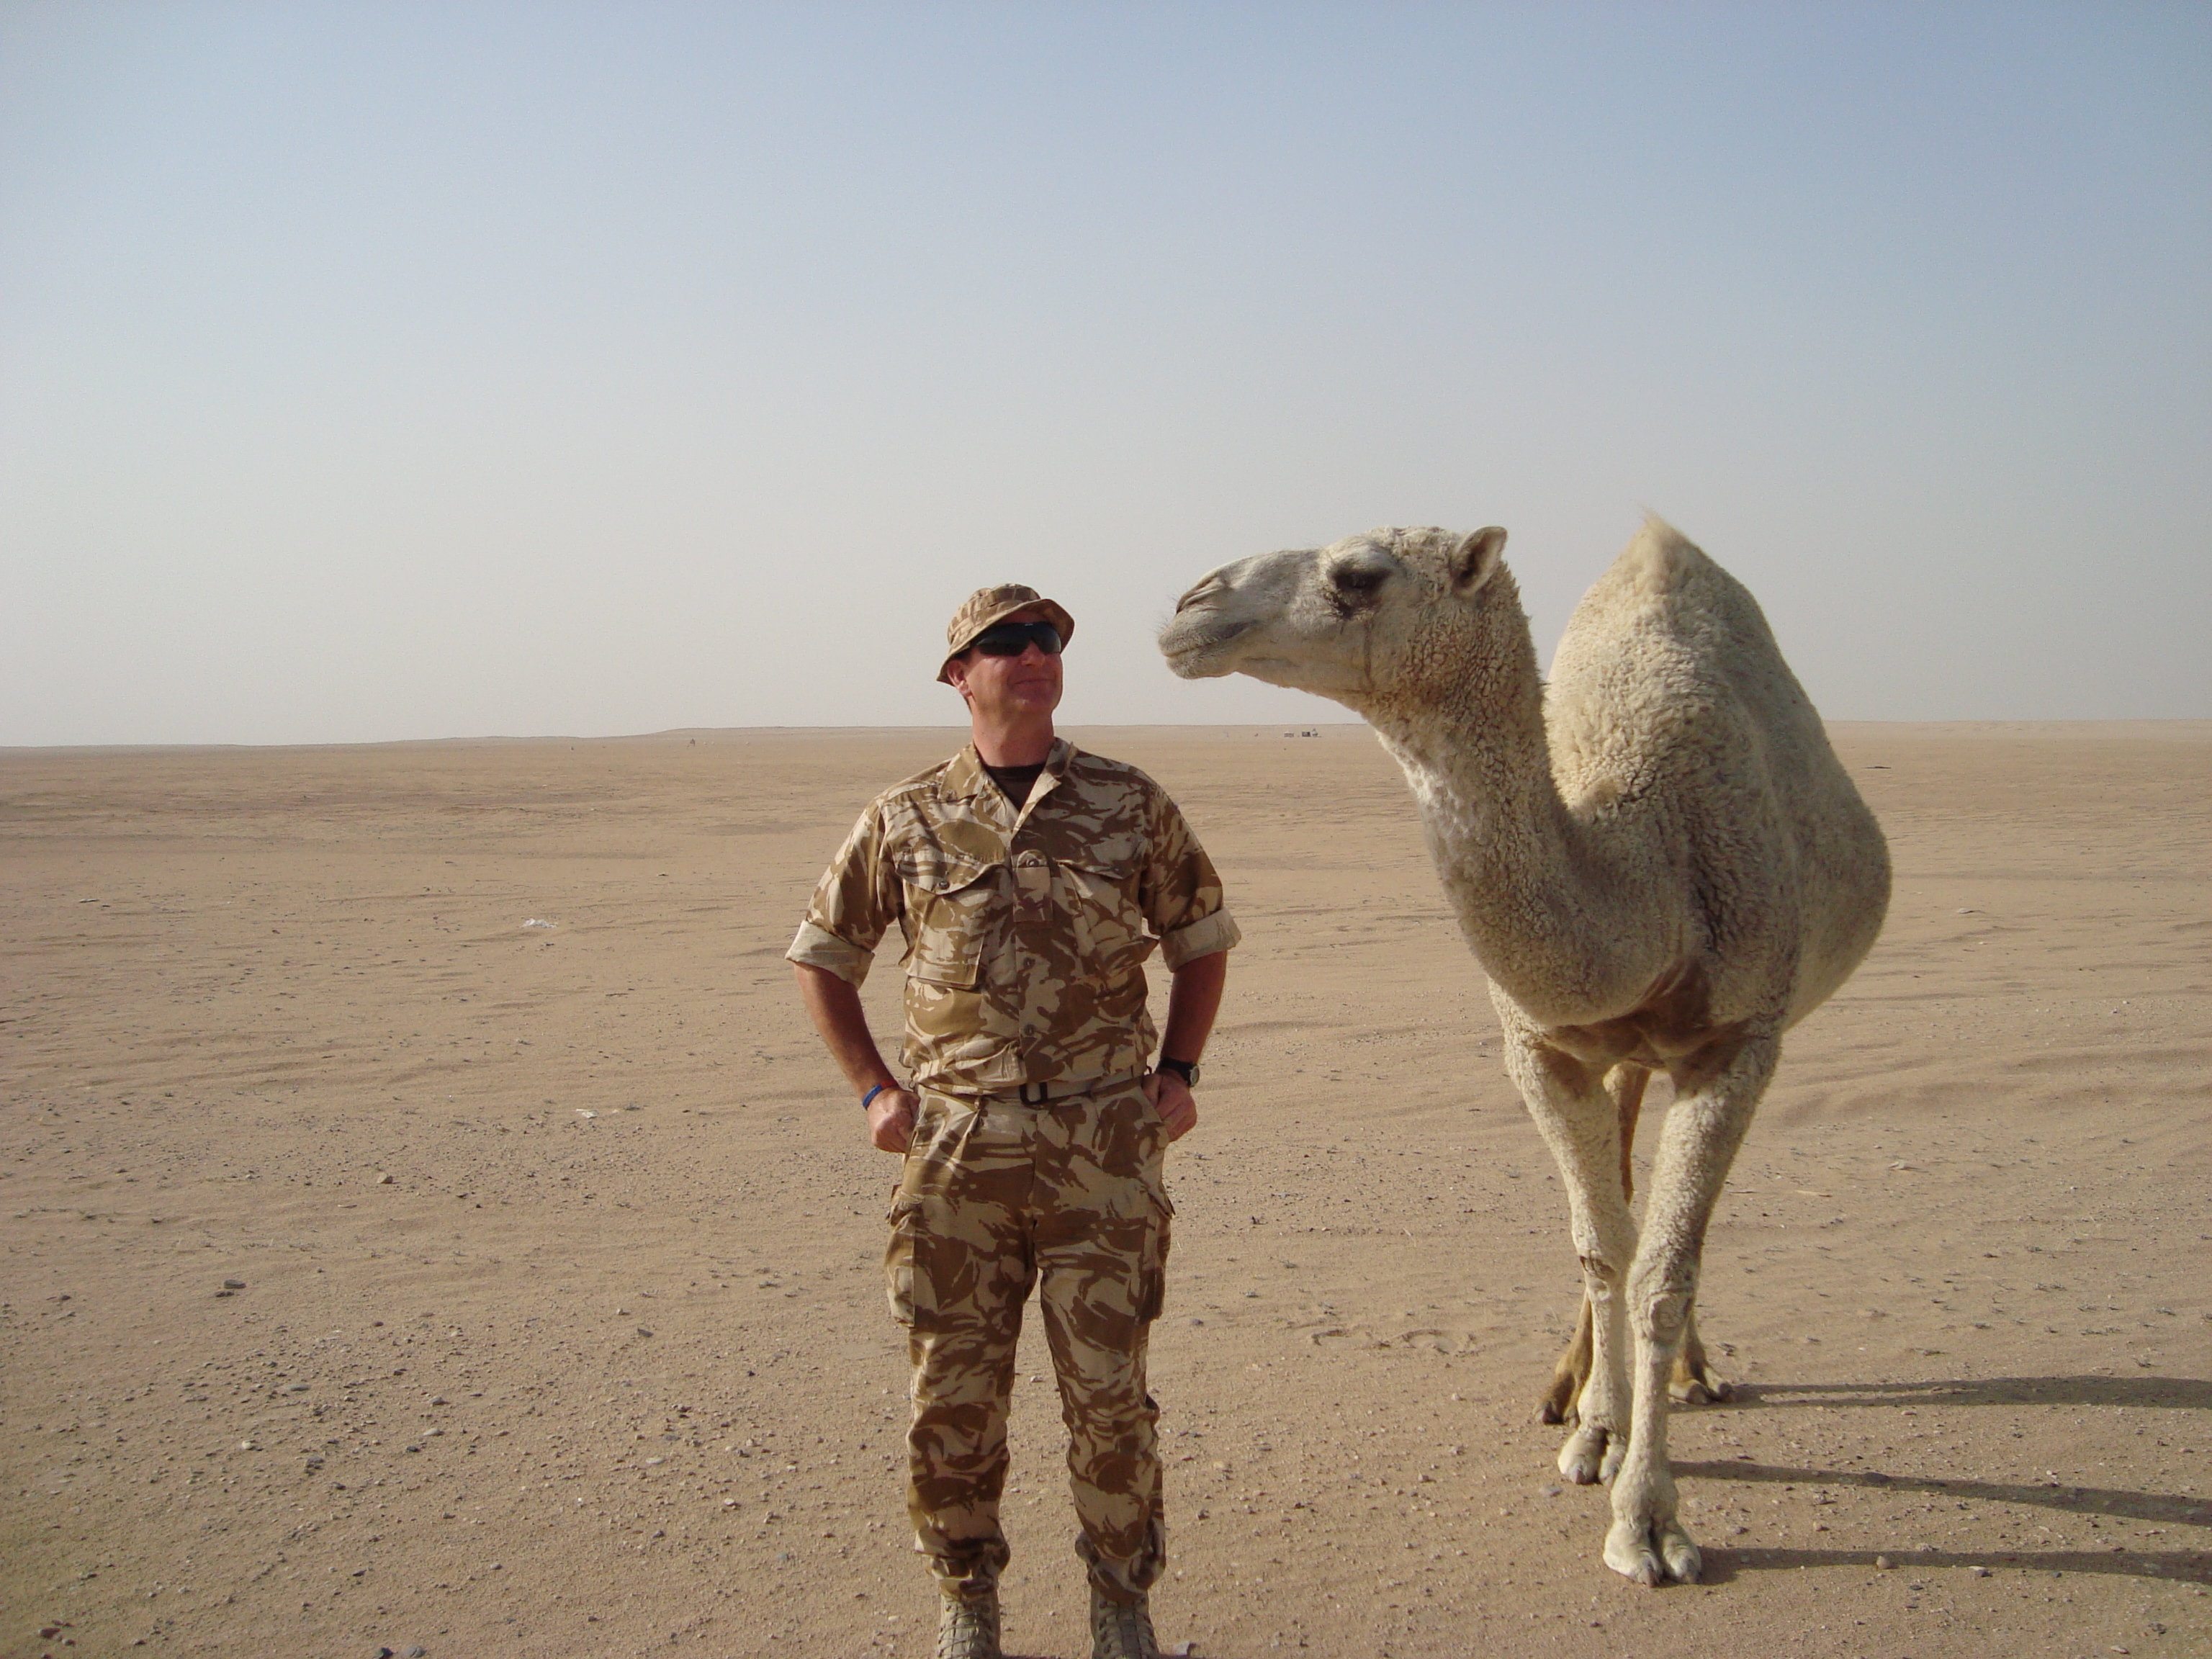 Soldier and camel in Kuwait